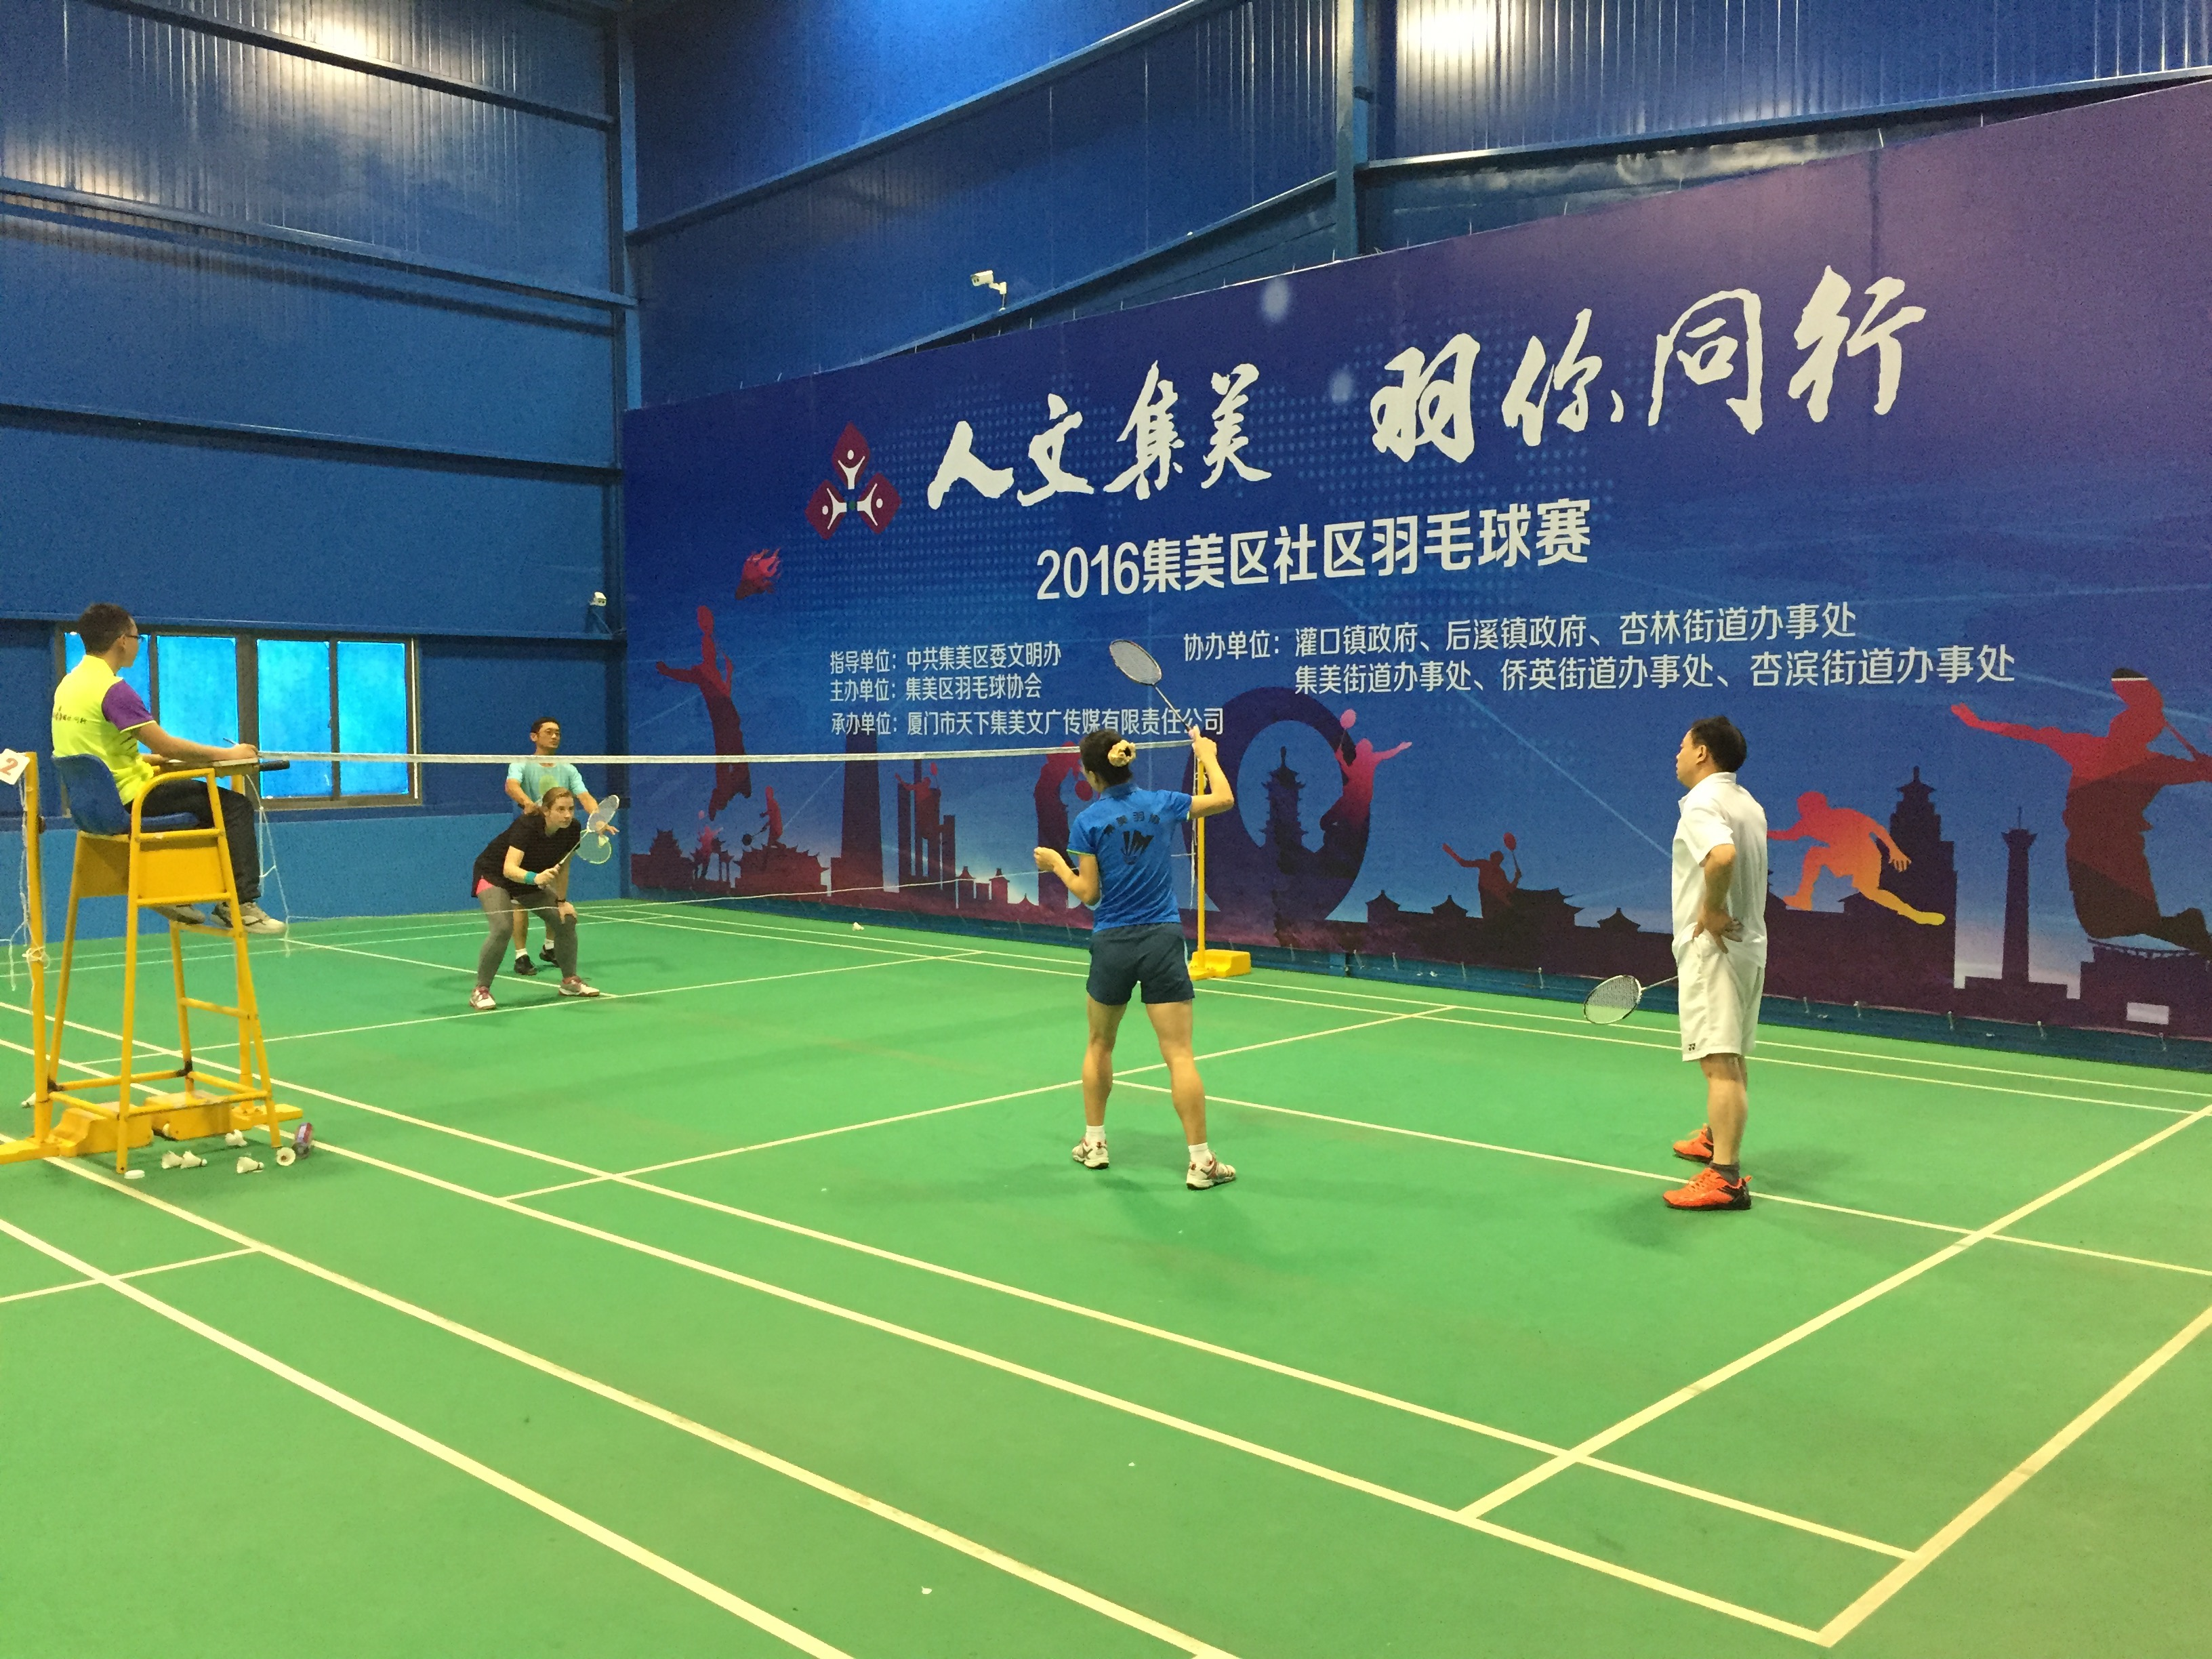 Jimei tournament